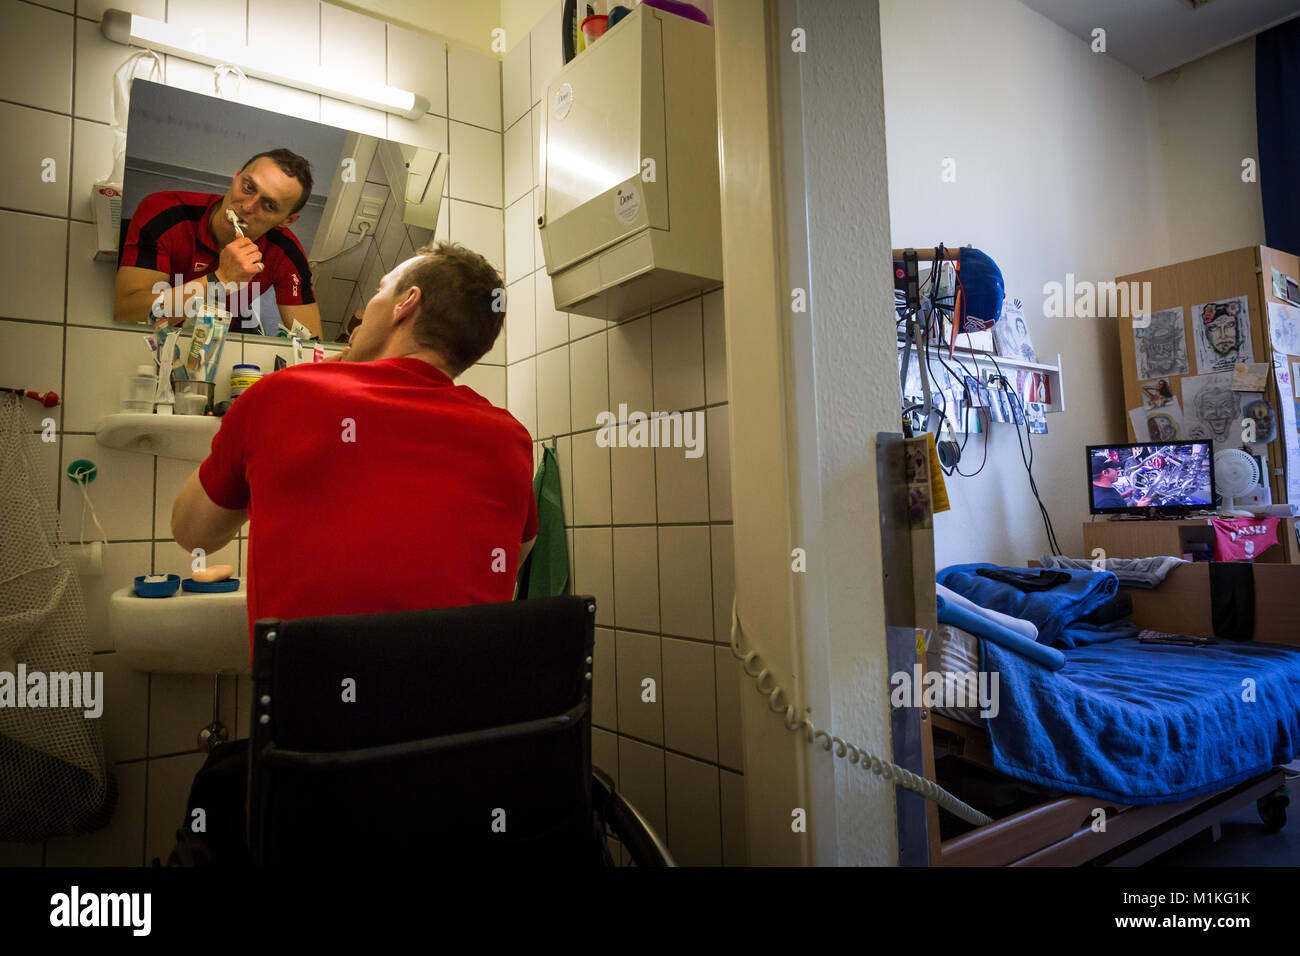 In the care department of the senior prison in Hövelhof the prisoners are looked after behind bars. Stock Photo